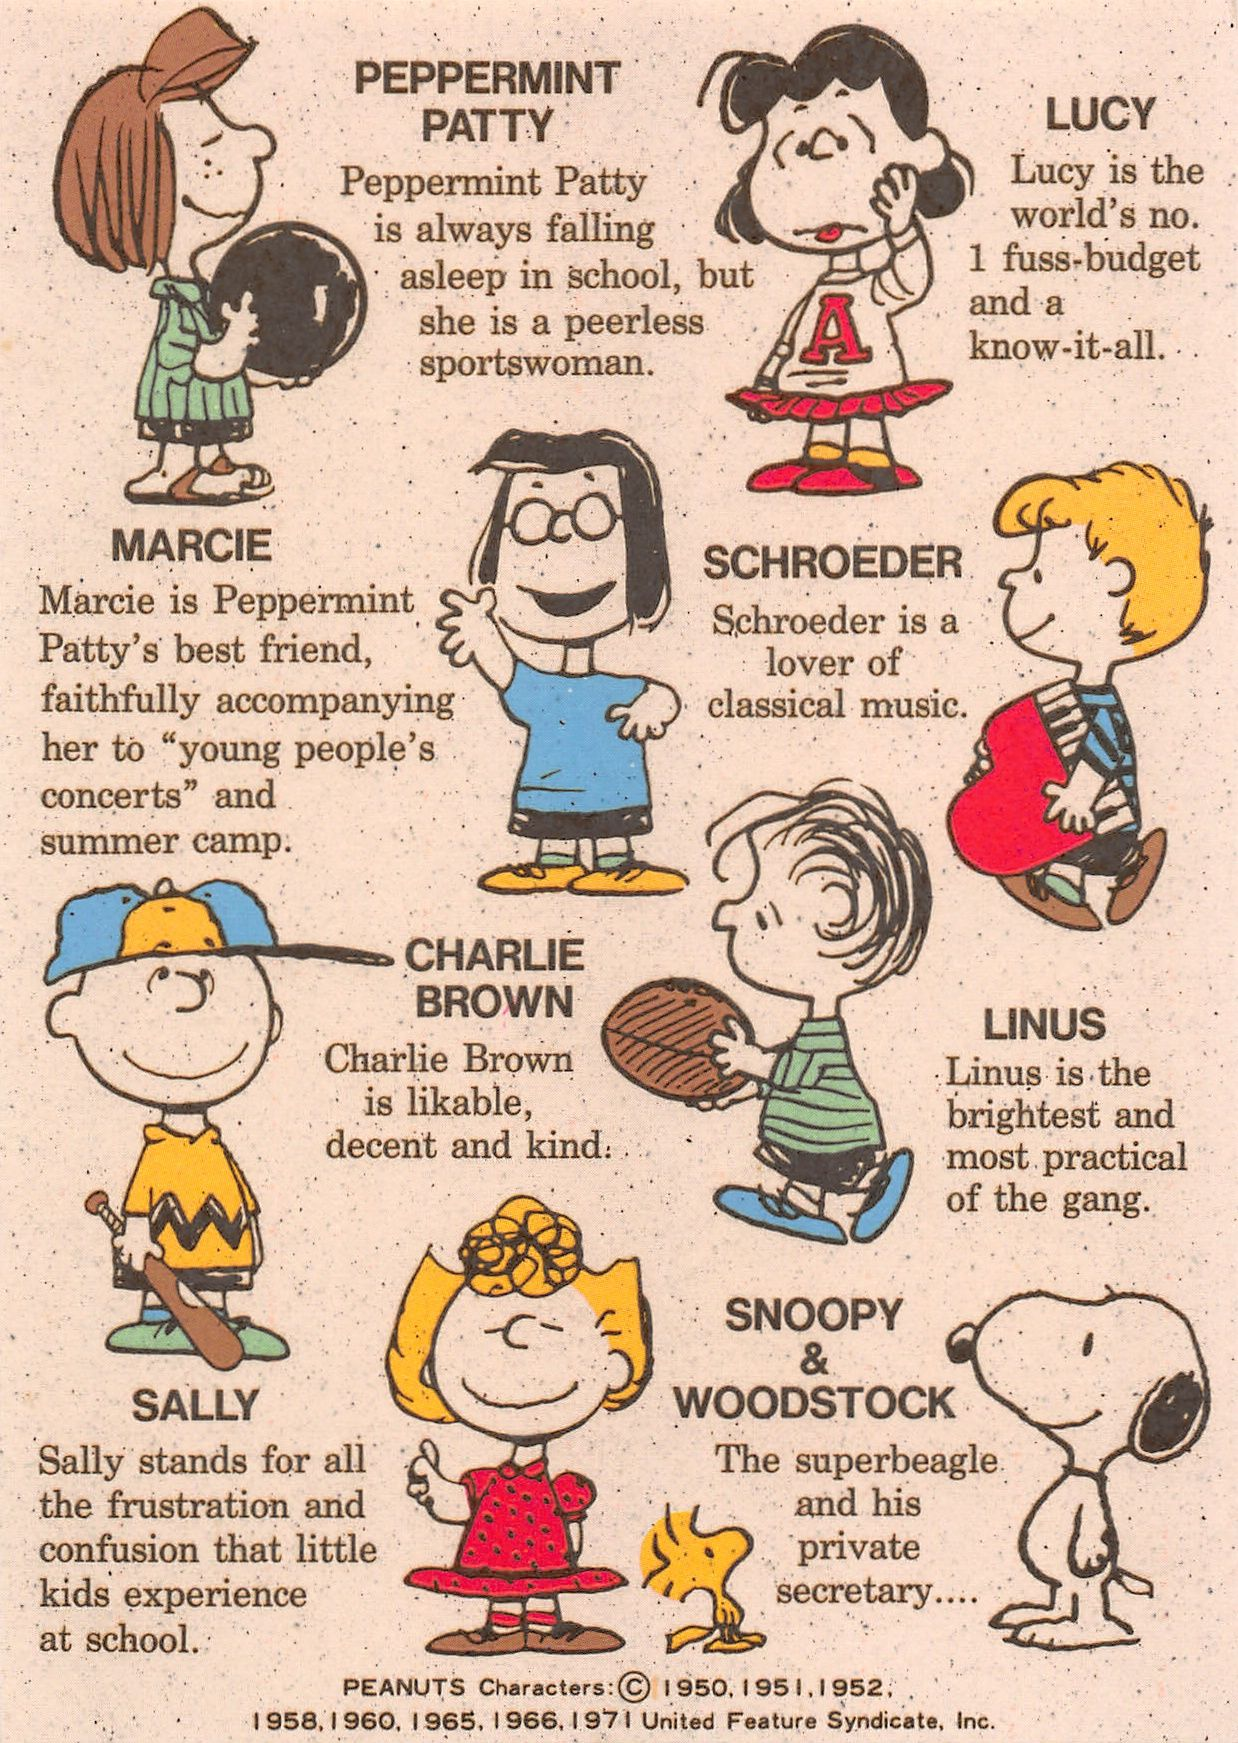 Pin by MarCuS AnDreW on Peanuts ❤ | Pinterest | Snoopy, Peanuts ...